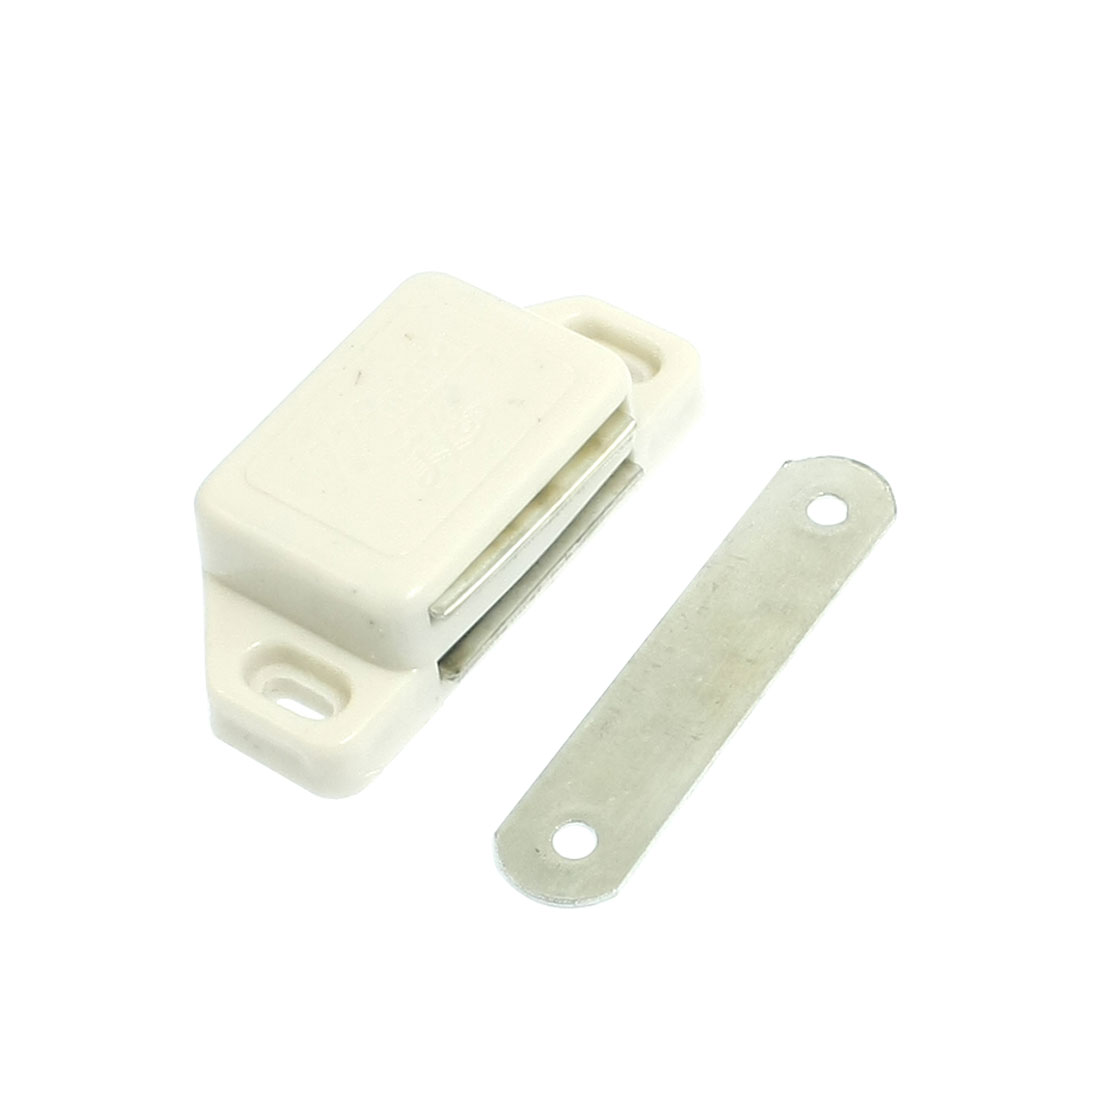 3.3mm Screw Diameter Cabinet Door White Plastic Magnetic Catch Latch